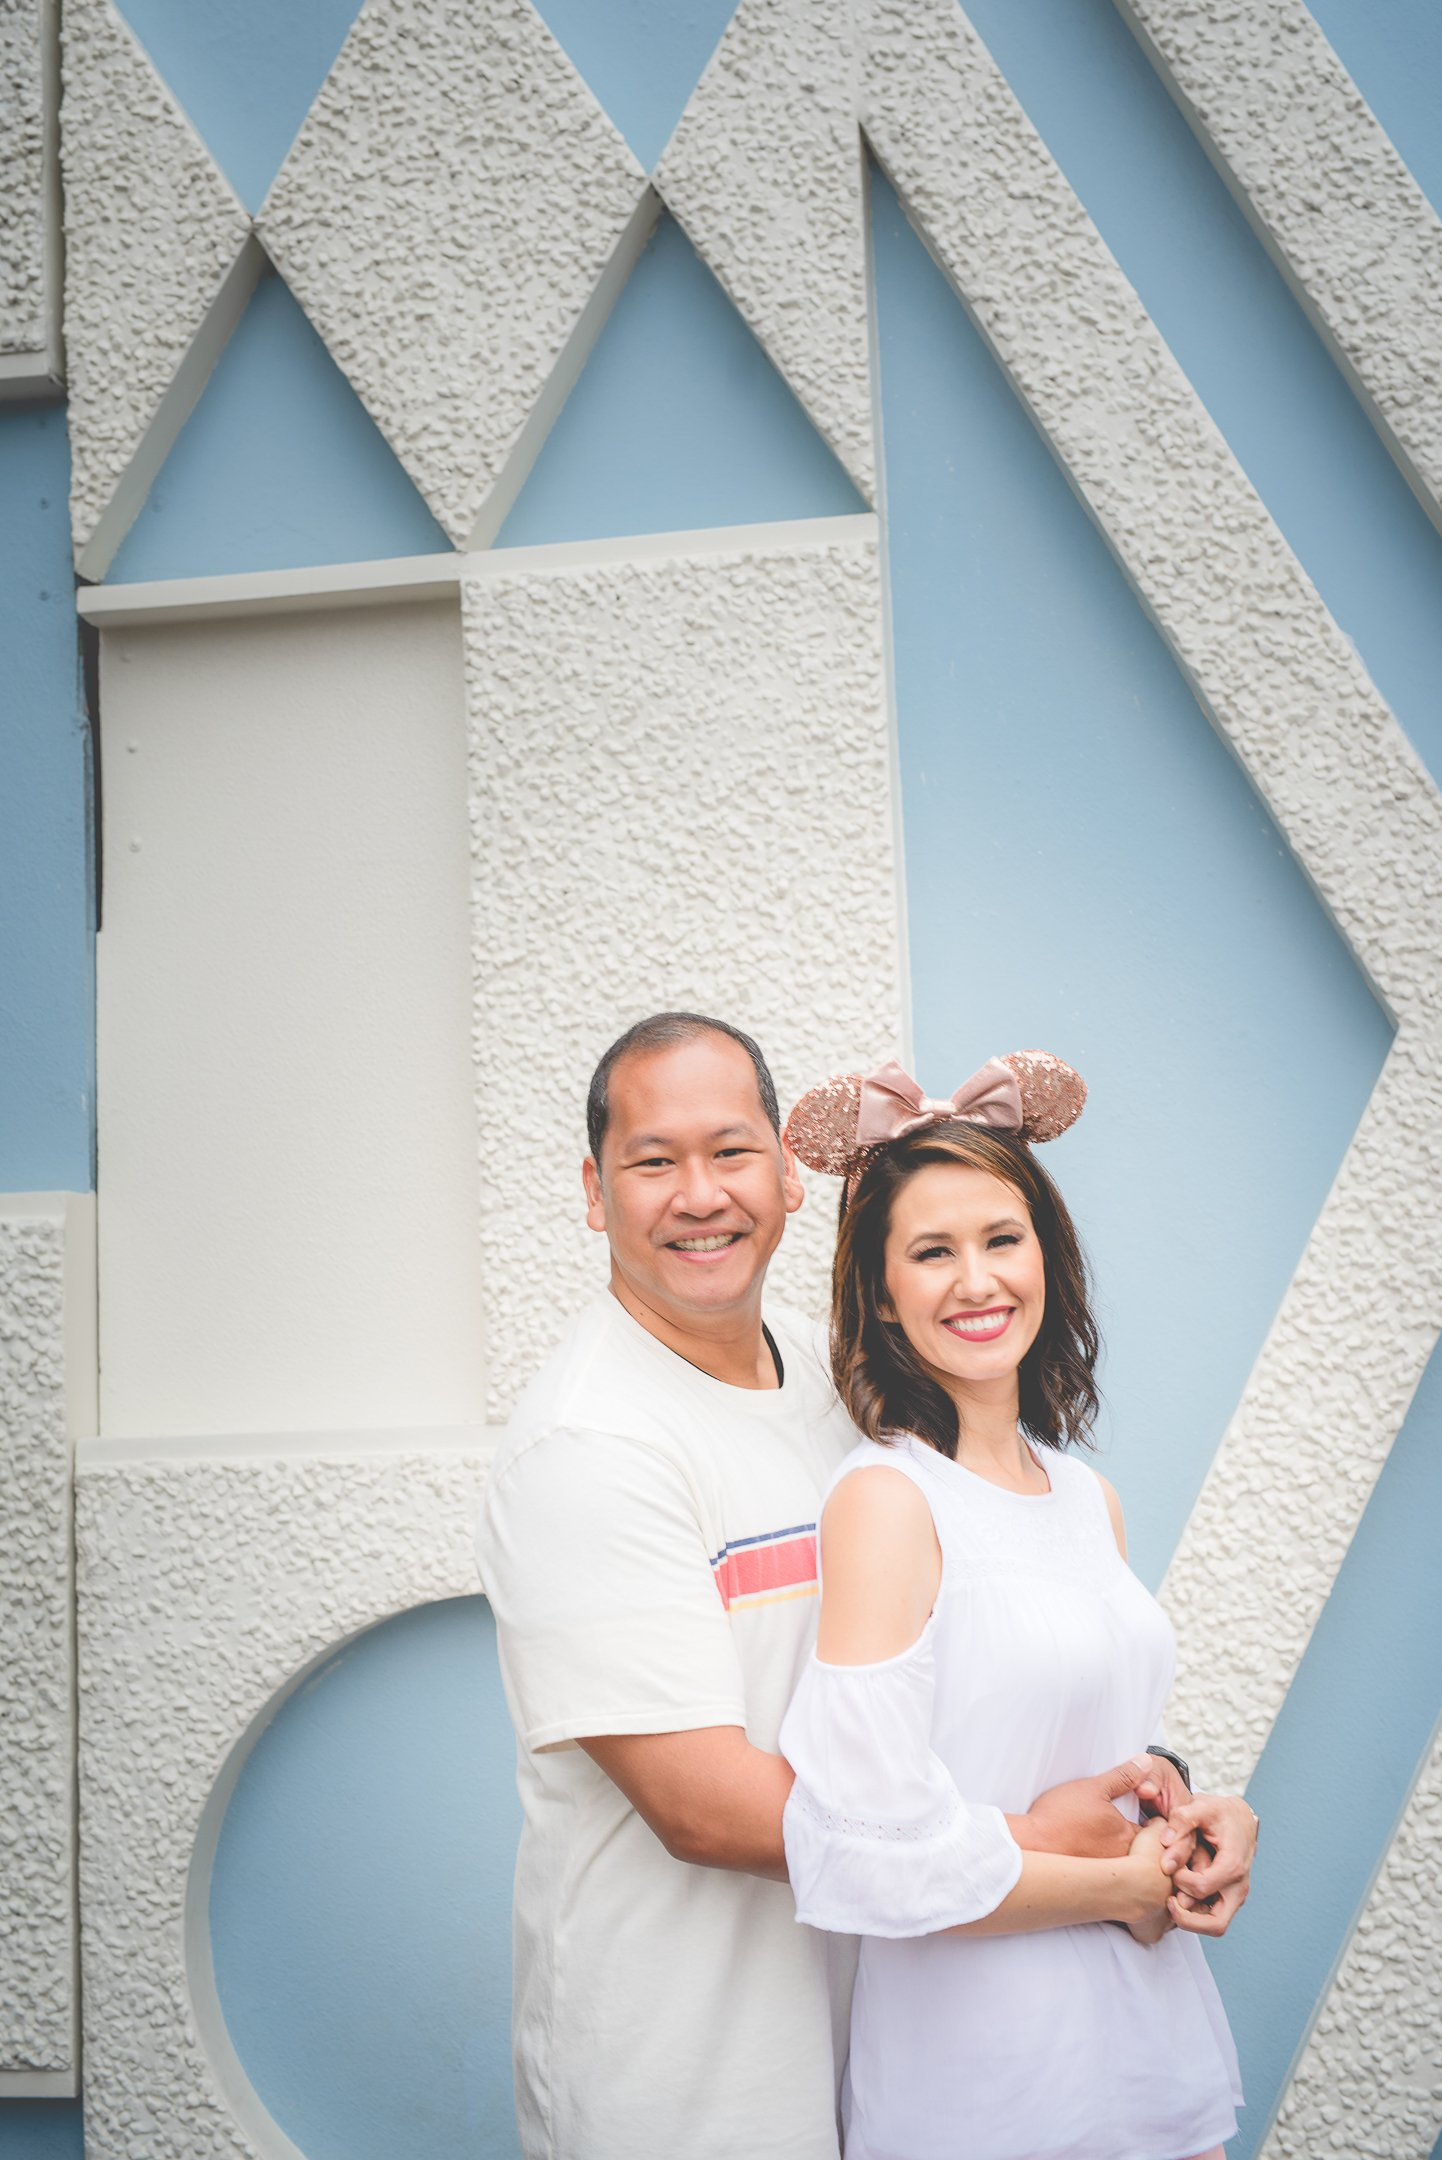 Mom and Dad photo by It's a small world ride in Disneyland, CA